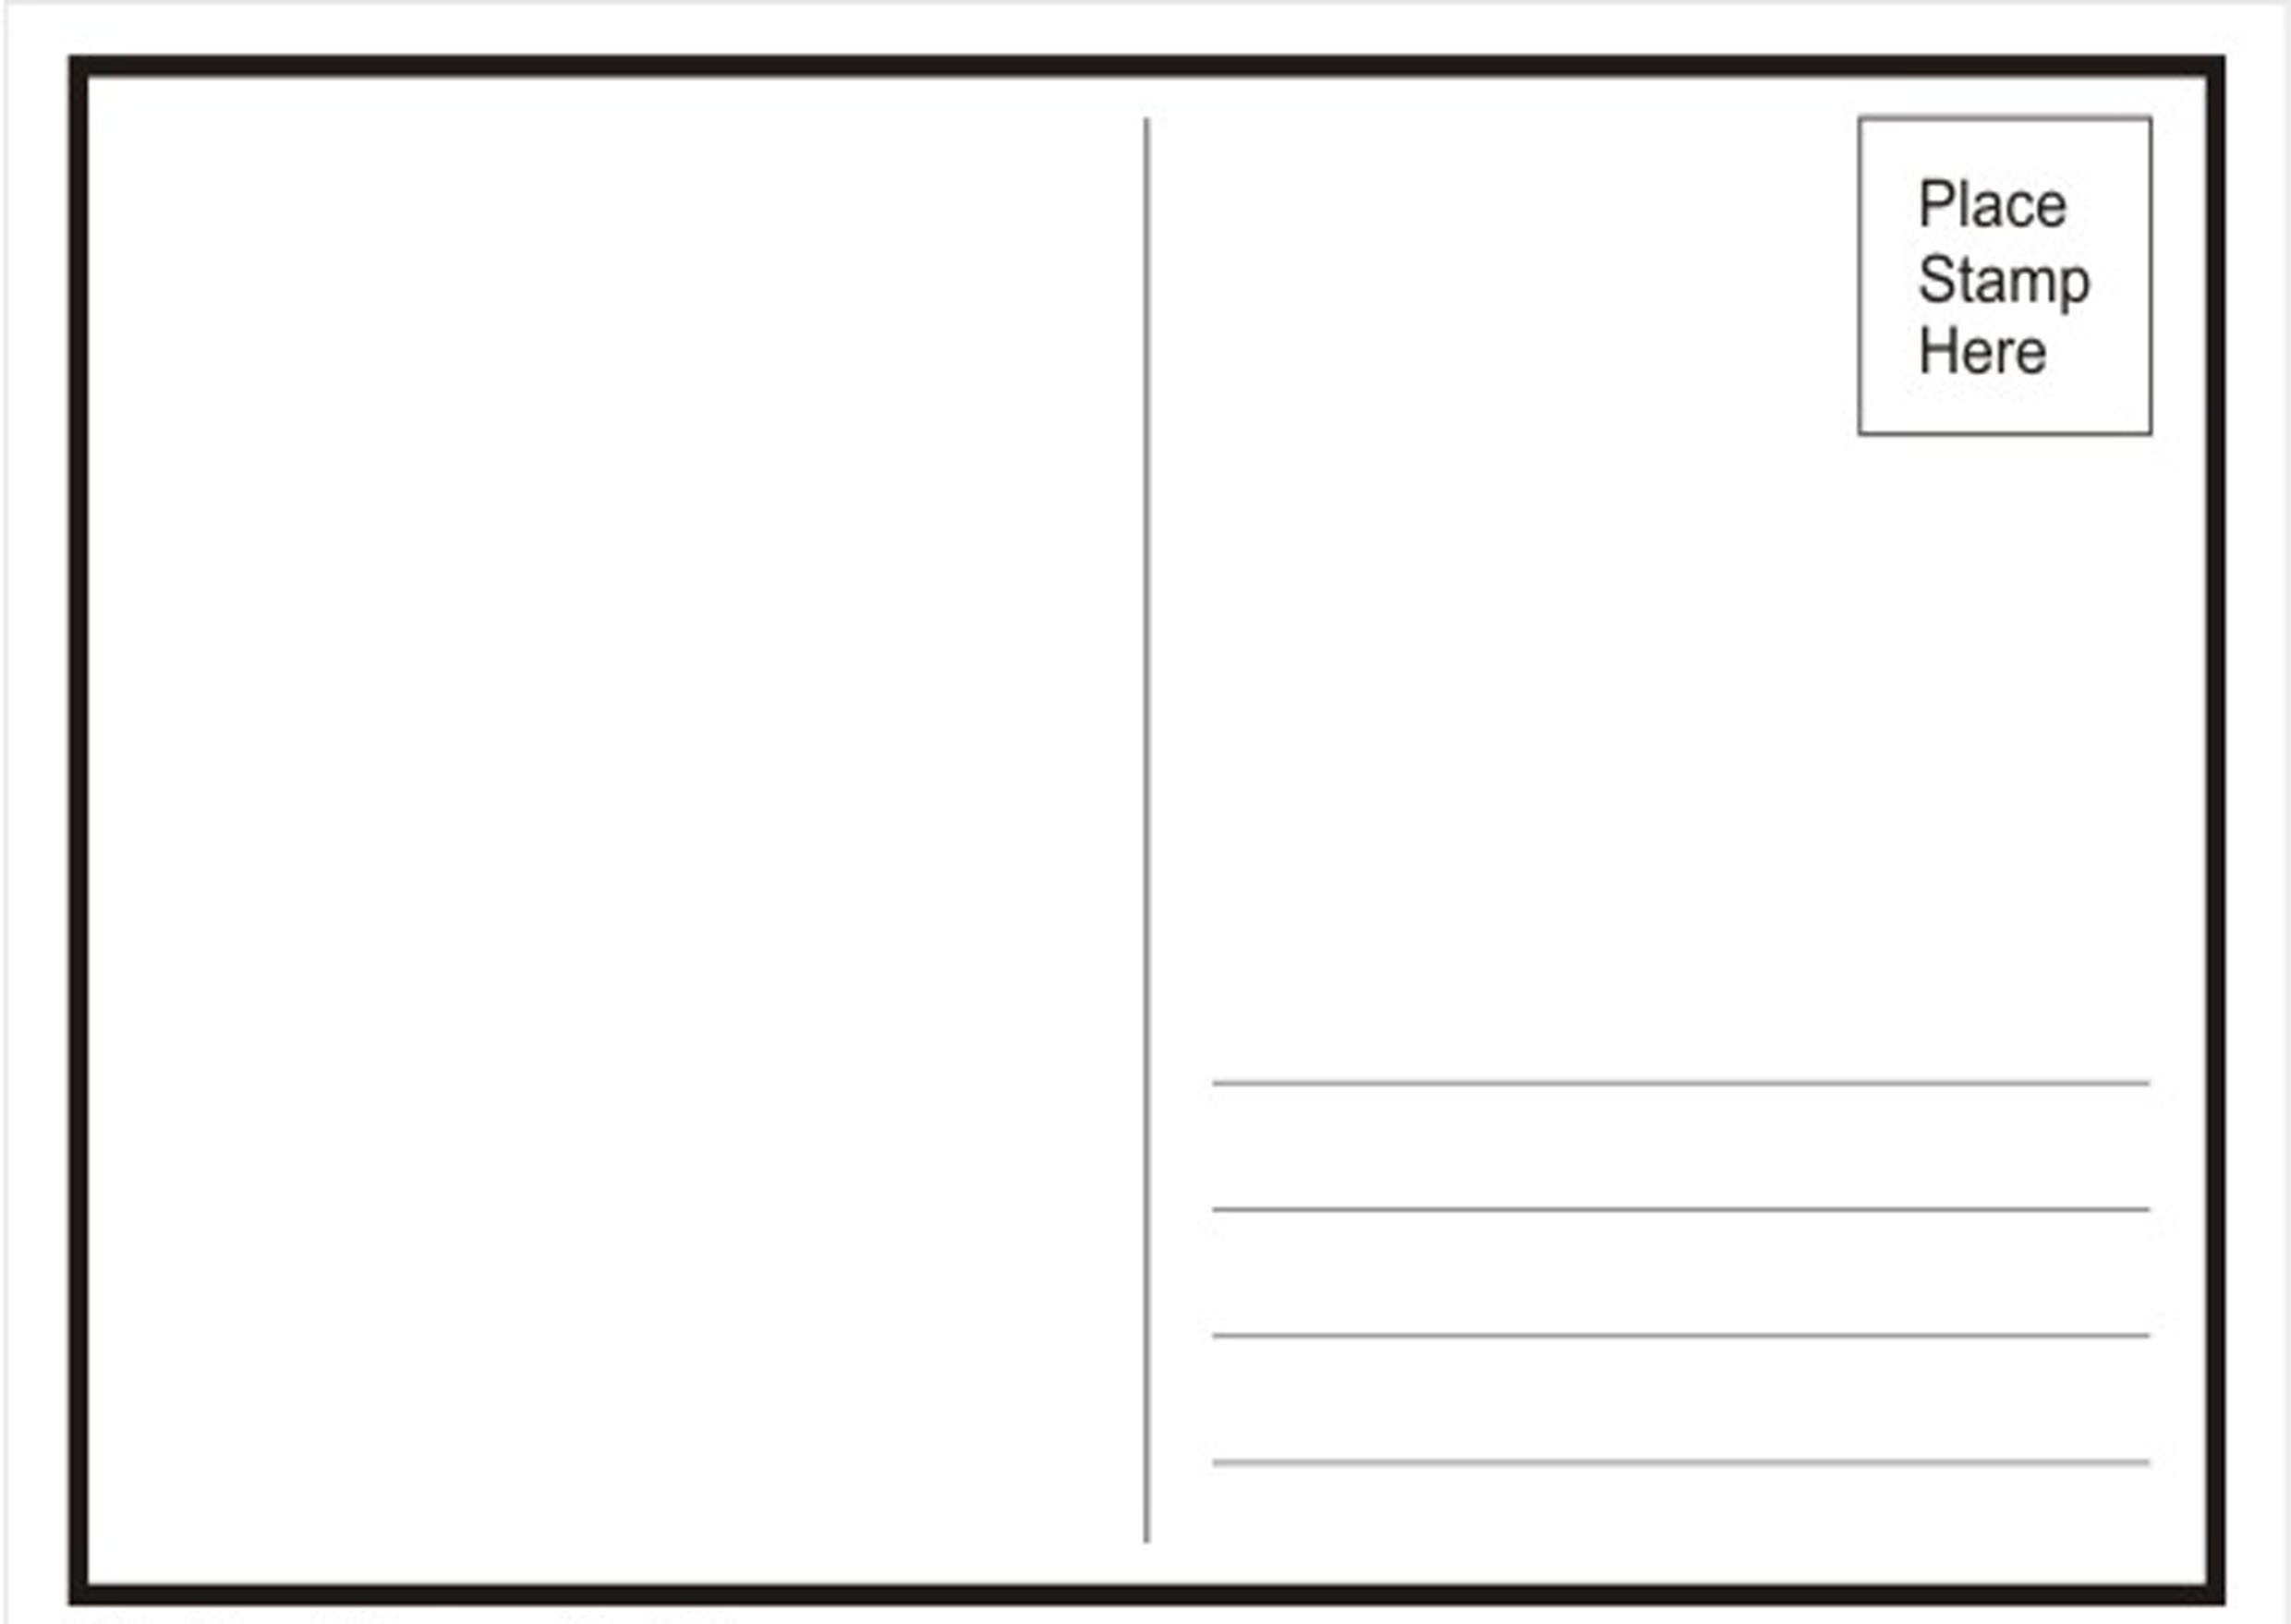 4x6 Postcard Template Word Alg Research Lorenashleigh